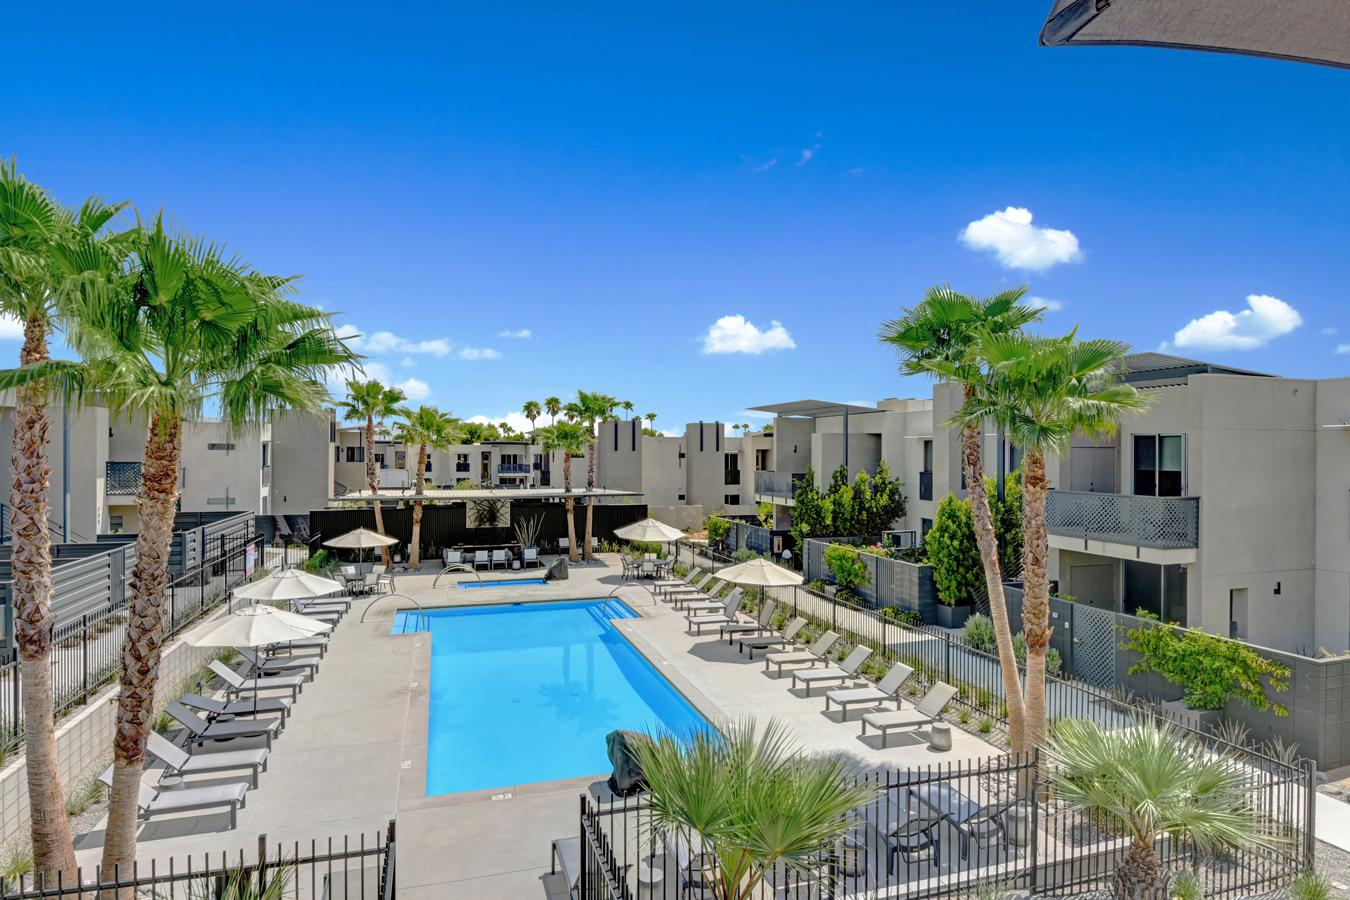 Looking for the perfect Palm Springs getaway? Highly upgraded condominium within the gates of 64@theRiv, located in the best location, and move-in ready! Featuring 2 Bedrooms, 2.5 Bathroom 1501 Sq. Ft. of living space.  Located Pool-side, this open concept home features a great-room & social gourmet kitchen, 9' ceilings, 8' sliders & clerestory window, all flowing out to the covered lanai overlooking the resort style pool area.  Upgraded luxe fit & finish details include 24x24 designer tiled flooring, quartz counter-tops, Fisher & Paykel appliances, wine refrigerator, Grohe & Kohler fixture, custom motorized window coverings, art lighting package,  Cocoon® fireplace, Maytag 5500 Series Washer & Dryer, and private owners storage closet.  Green/Energy efficiencies feature low-E glass, LED lighting, tankless water heater, 3 kW owned Solar & more! This Gated Community features a resort-style pool/spa, fire-pit conversation area, outdoor BBQ, Car-charging stations, dog park and stunning mountain views...Palm Springs Living at its Best!